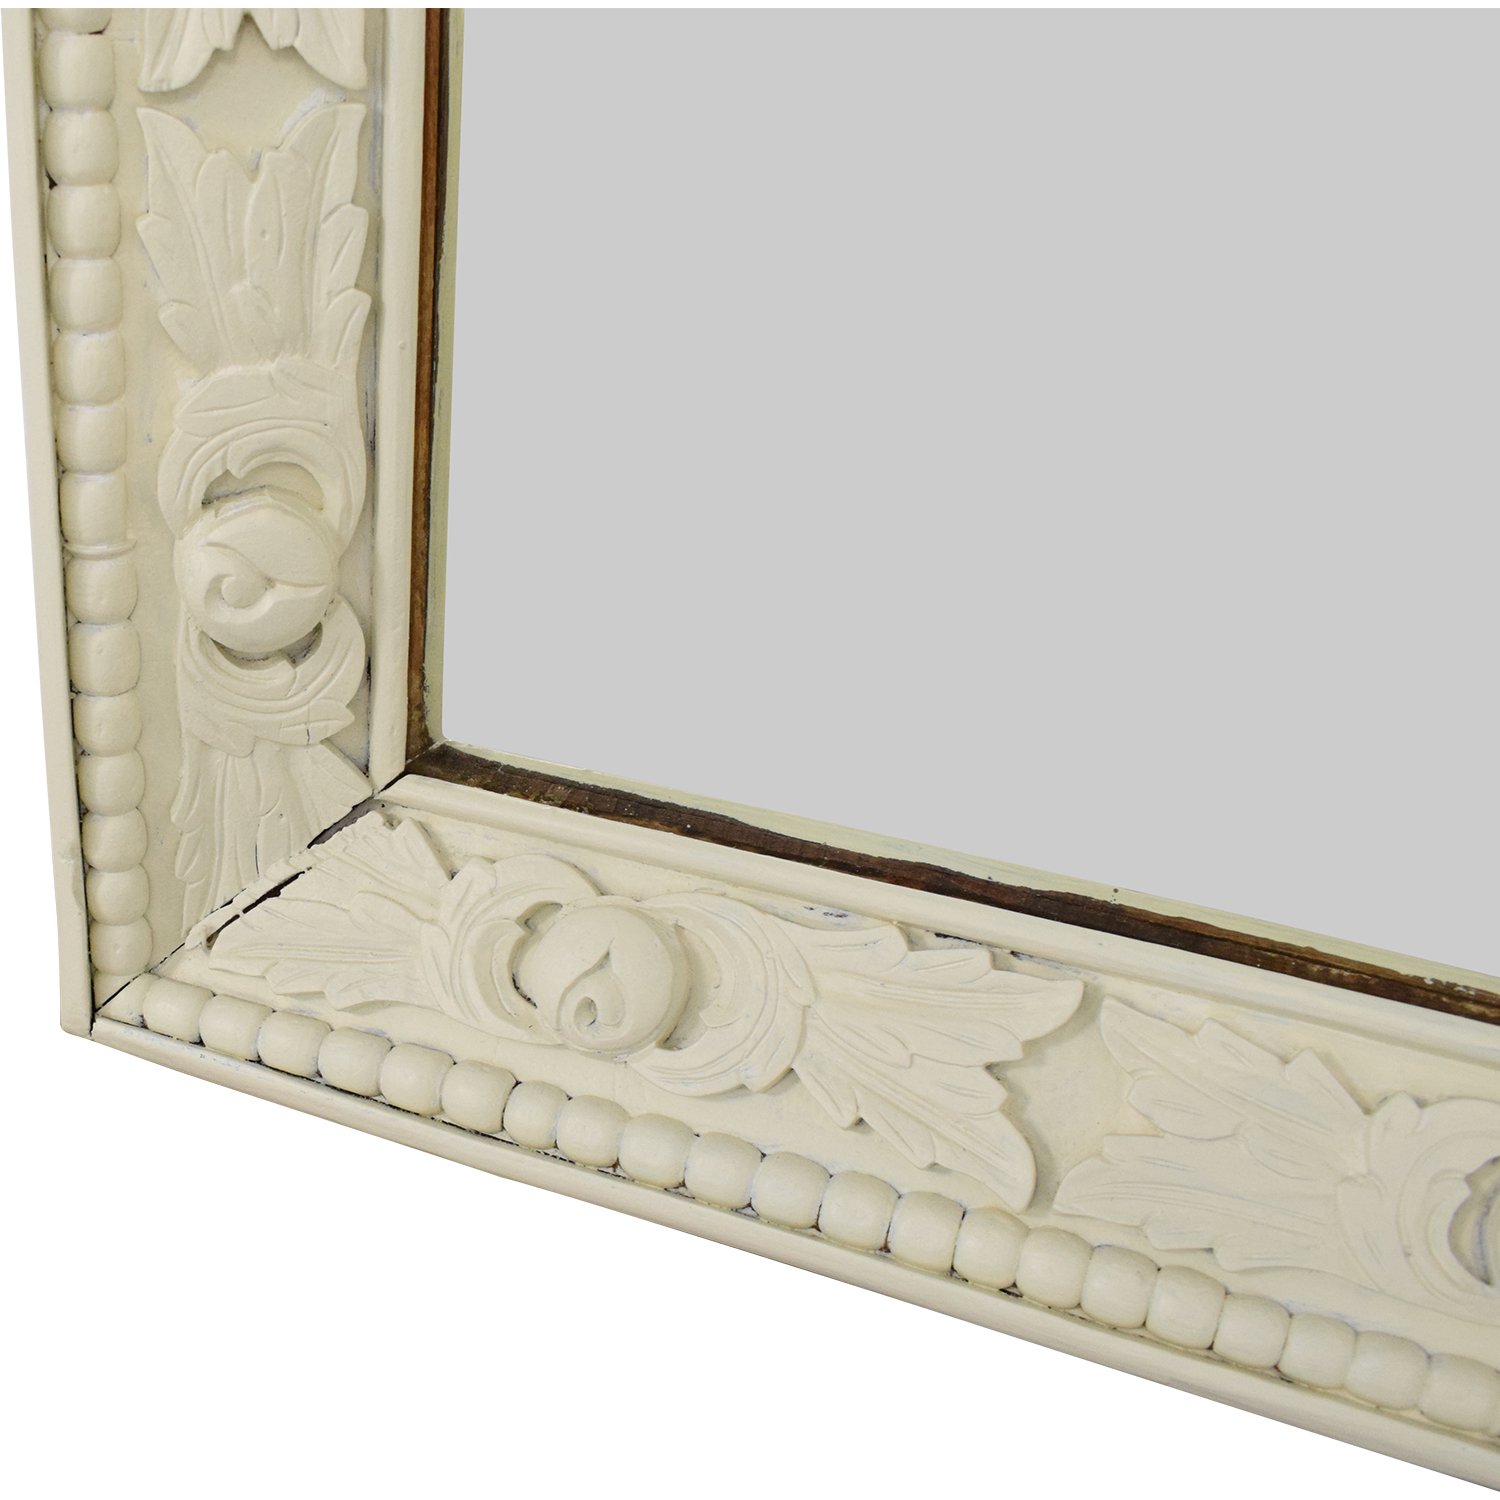 Vintage Mirror with Carved Frame coupon